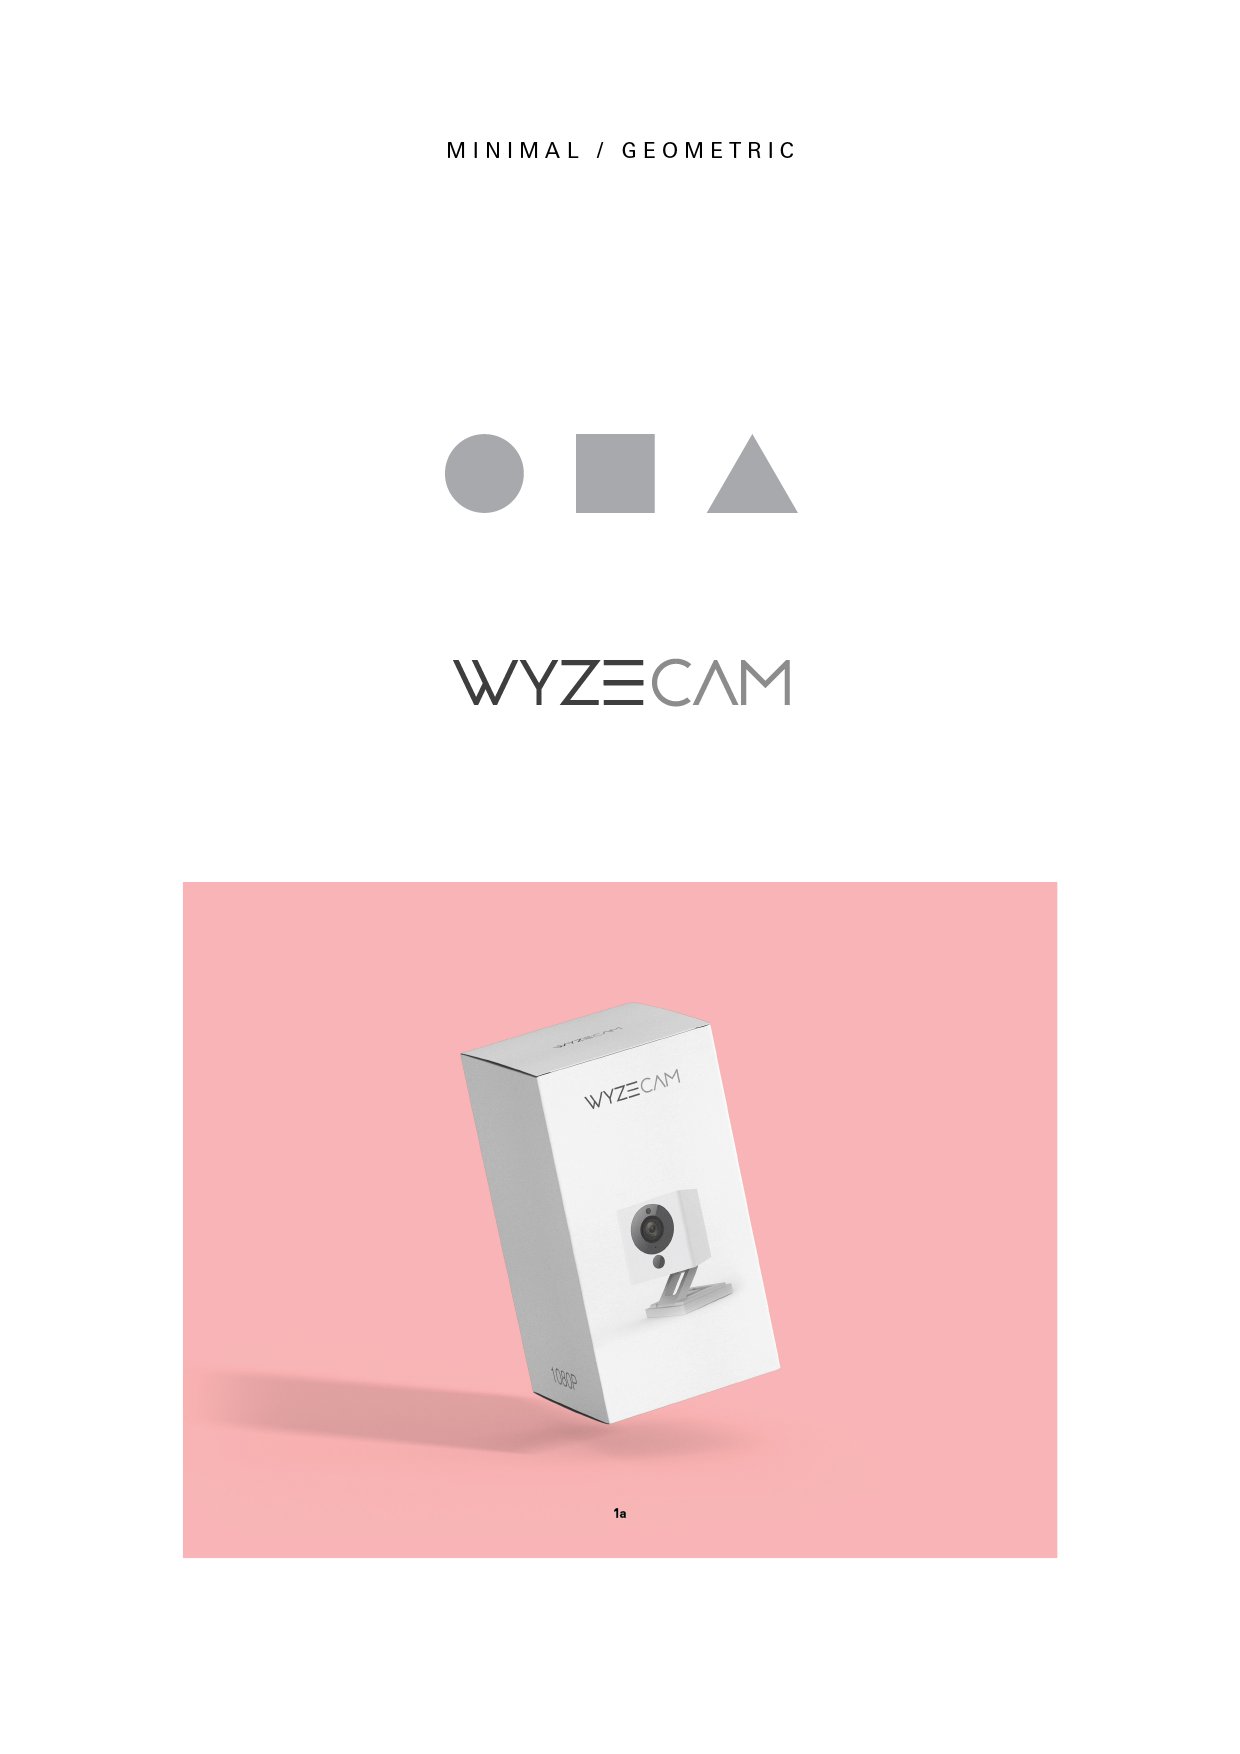 Wyze_direction1.png